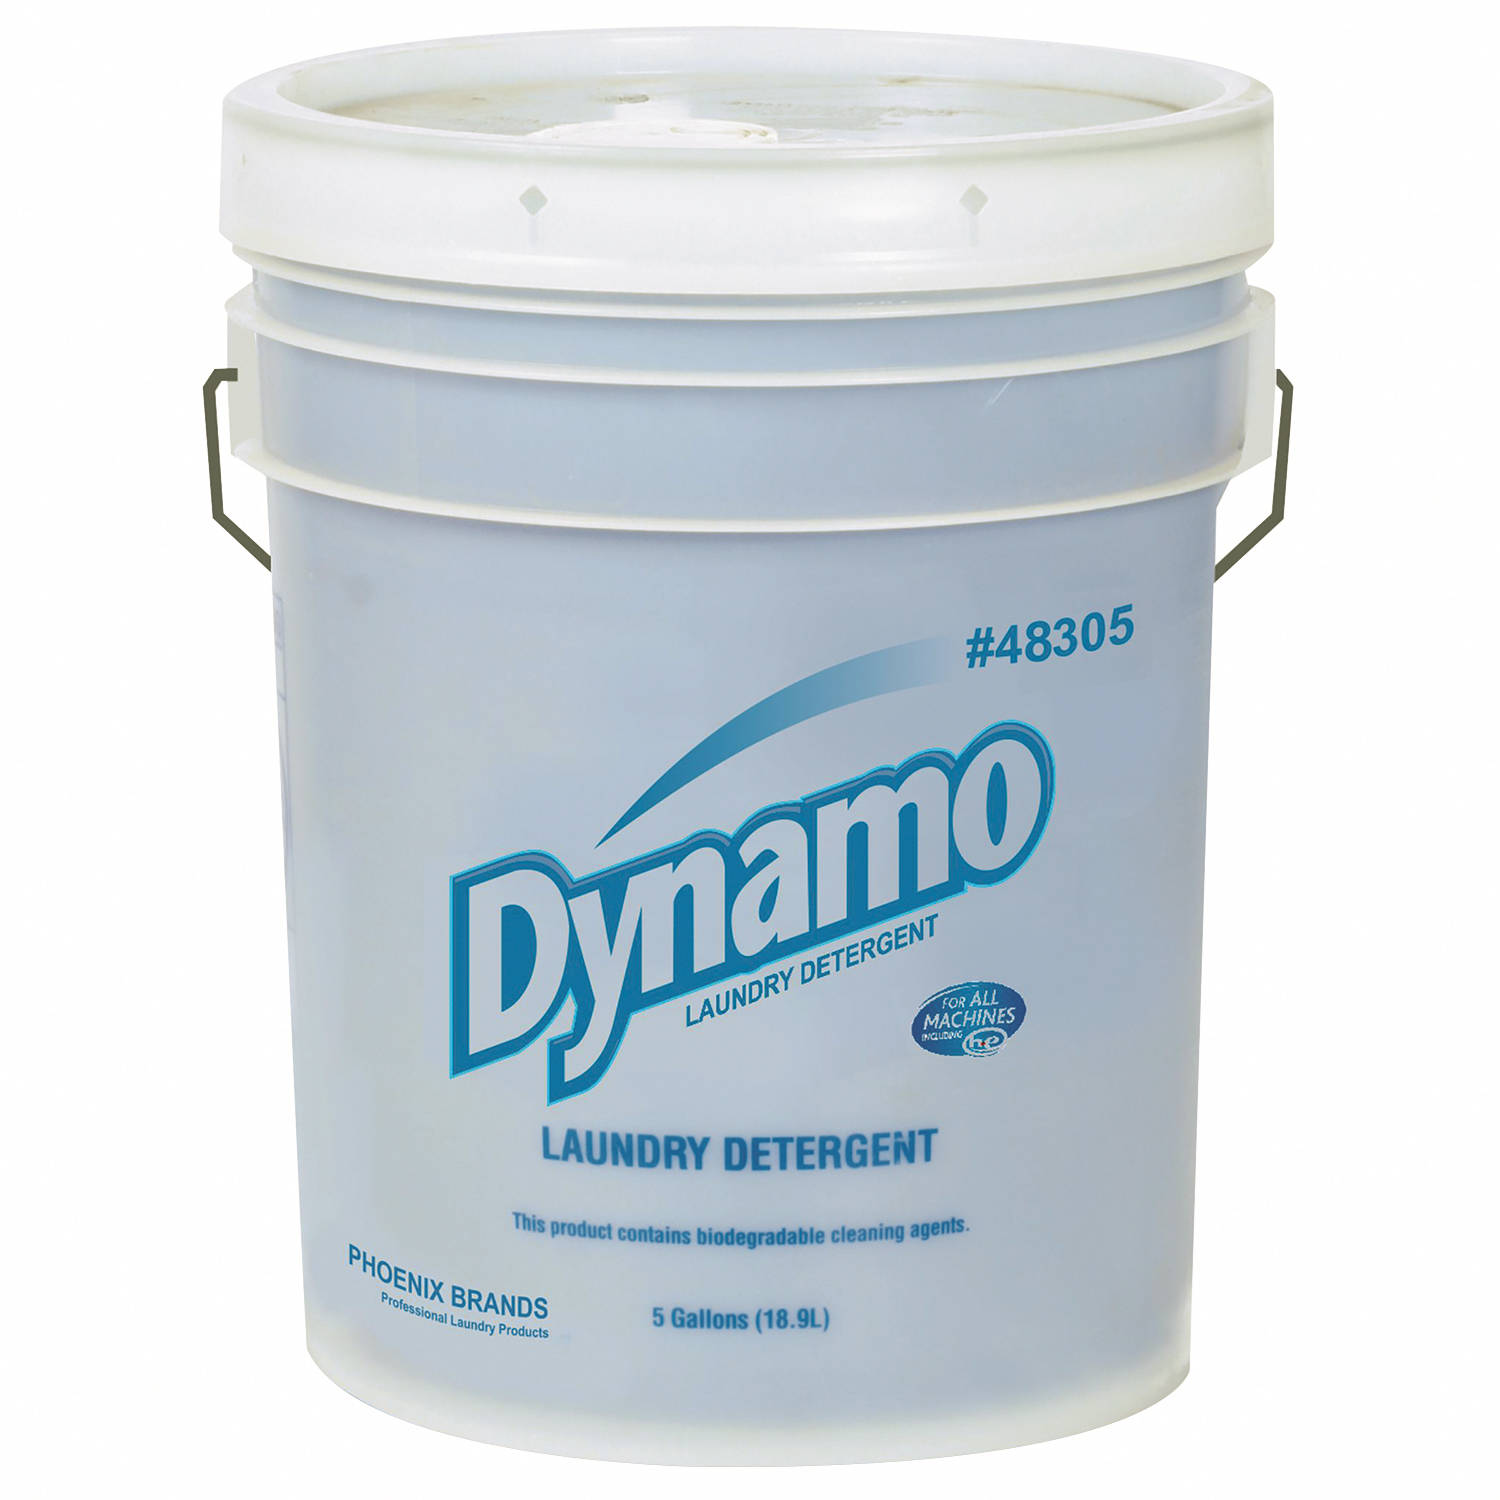 Dynamo Industrial-Strength Laundry Detergent, 5 gal